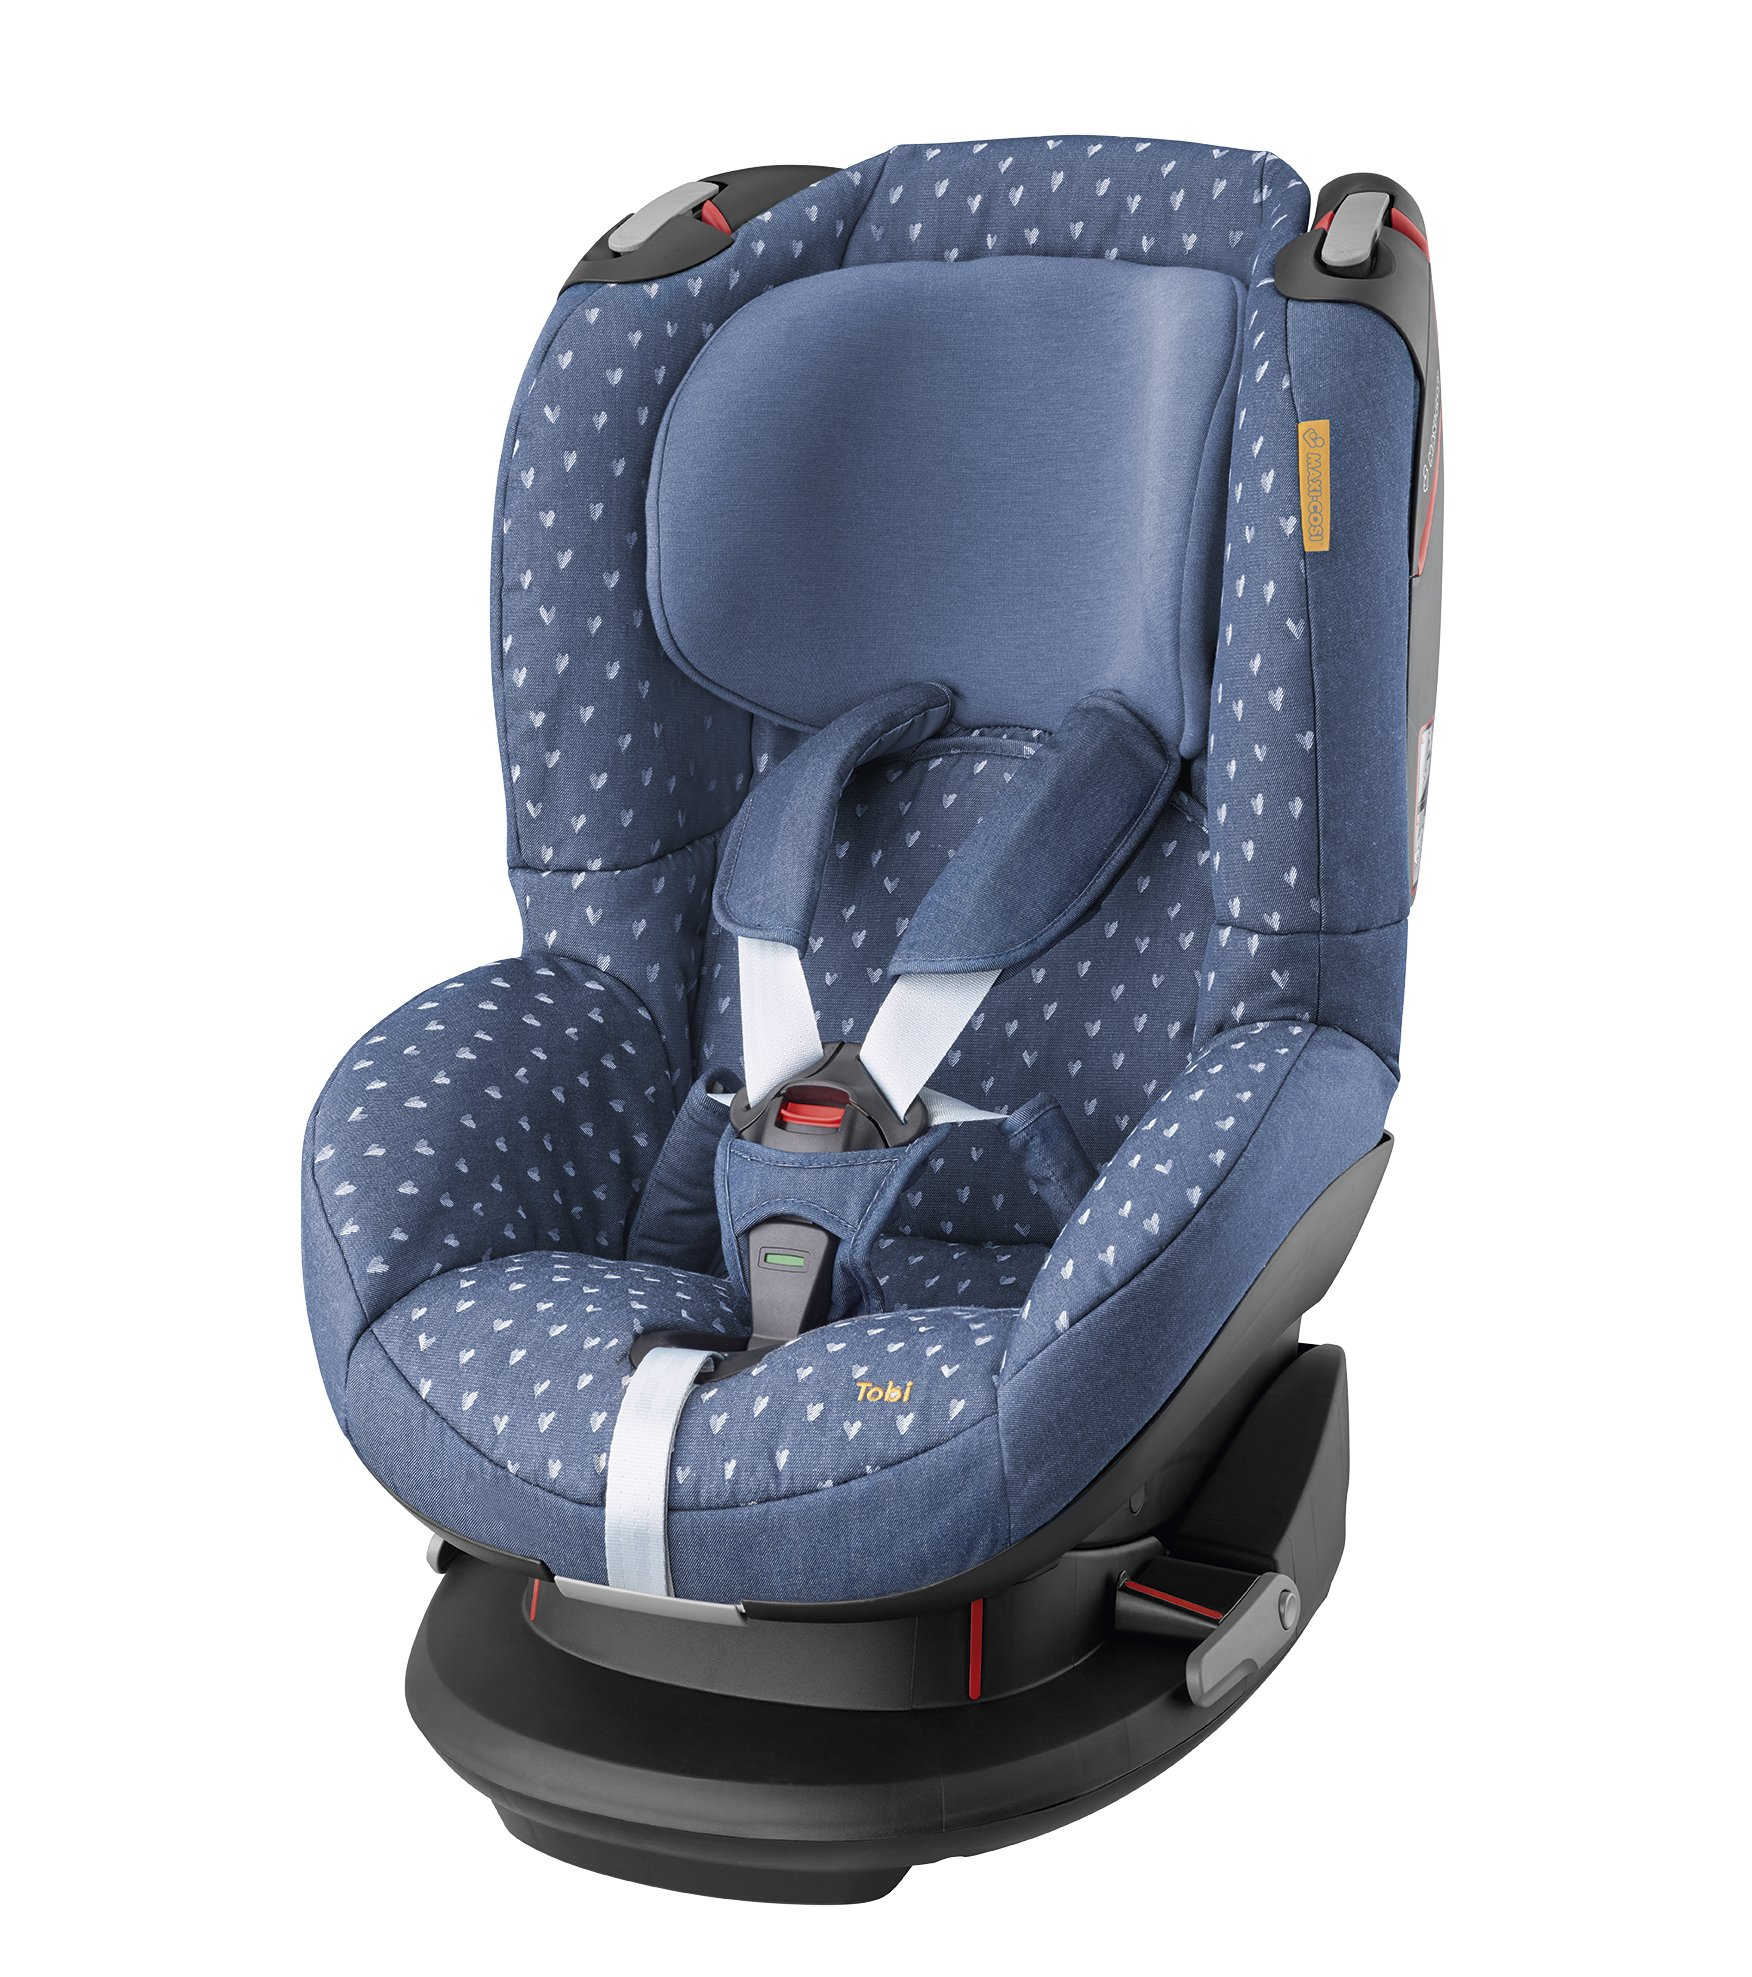 Maxi-Cosi Tobi Toddler Car Seat Group 1, Forward-Facing Reclining Car Seat, 9 Months-4 Years, 9-18 kg, Denim Hearts Maxi-Cosi Forward facing, suitable for toddler of weight 9-18 kg Easy to install with a three-point safety belt Intuitive and easy to read belt routing 1